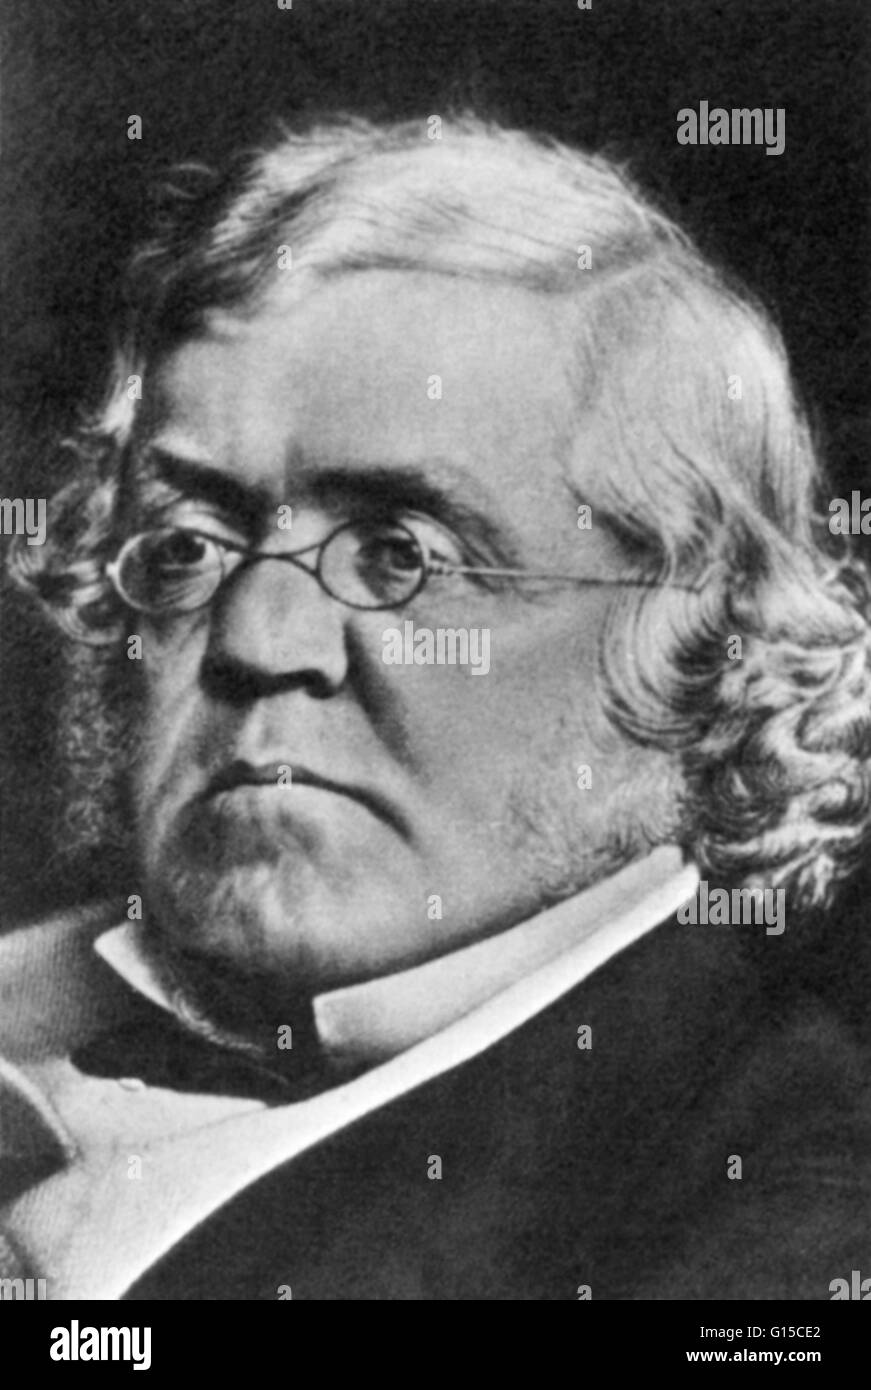 William Makepeace Thackeray (July 18, 1811 - December 24, 1863) was an English novelist of the 19th century. He Stock Photo